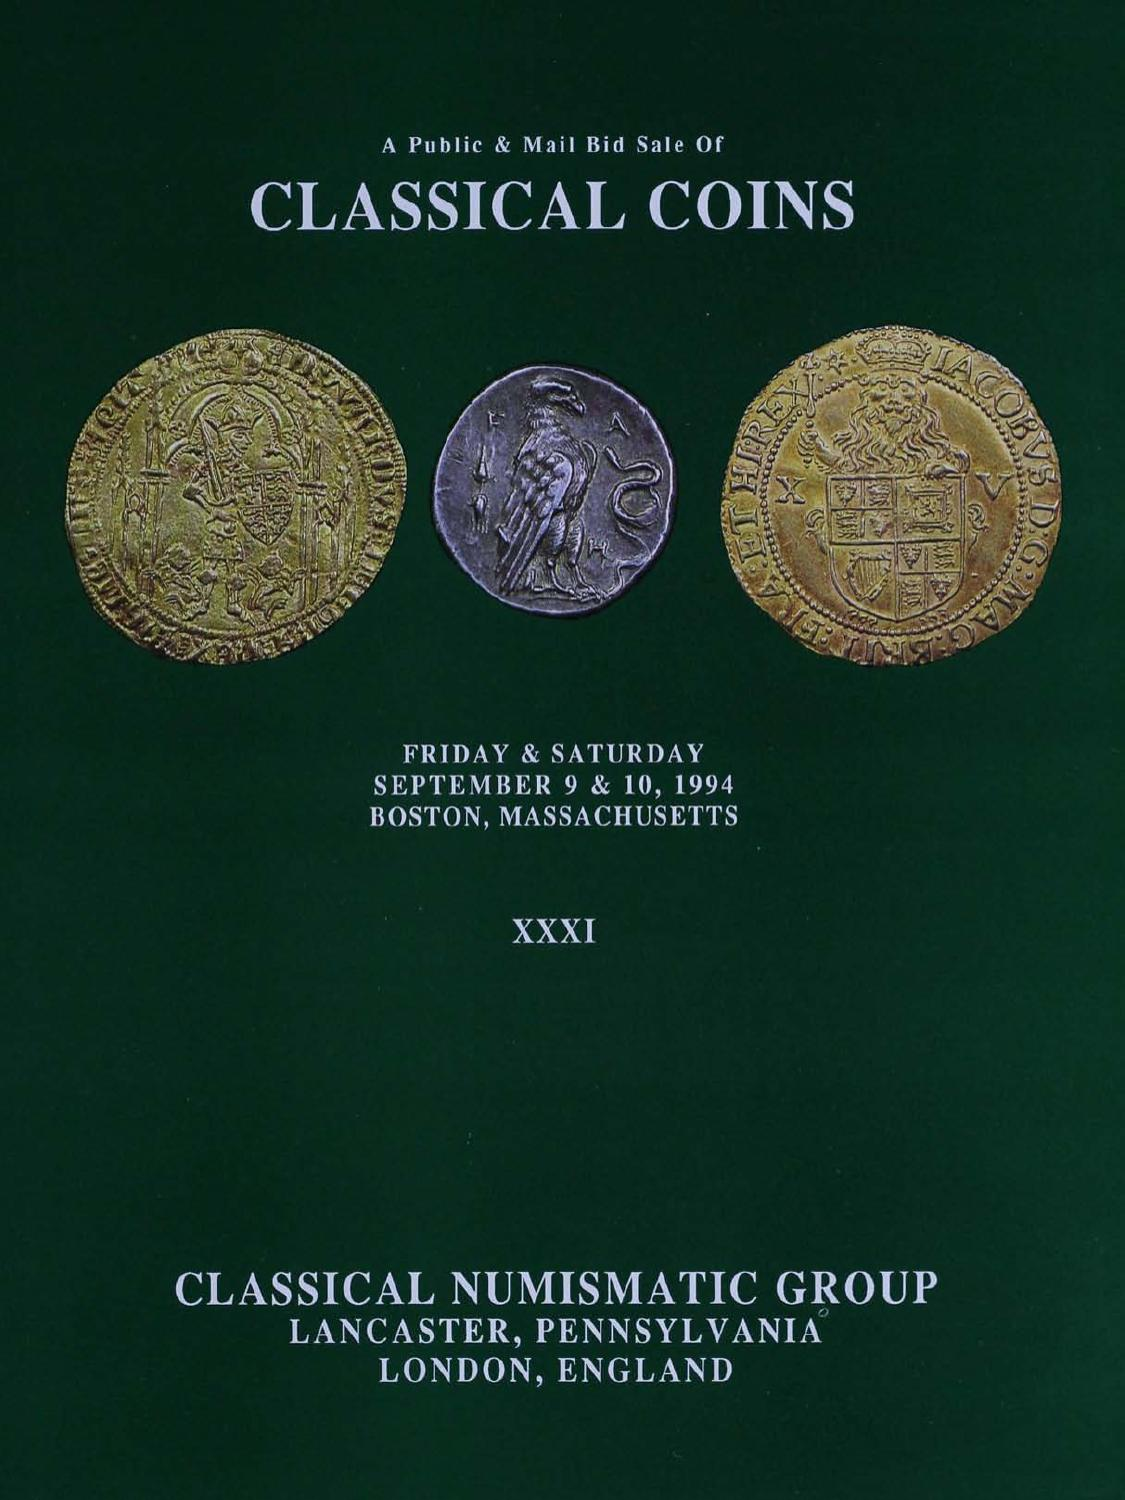 on sale 7be6f fc8a5 CNGXXXI by Classical Numismatic Group, LLC - issuu